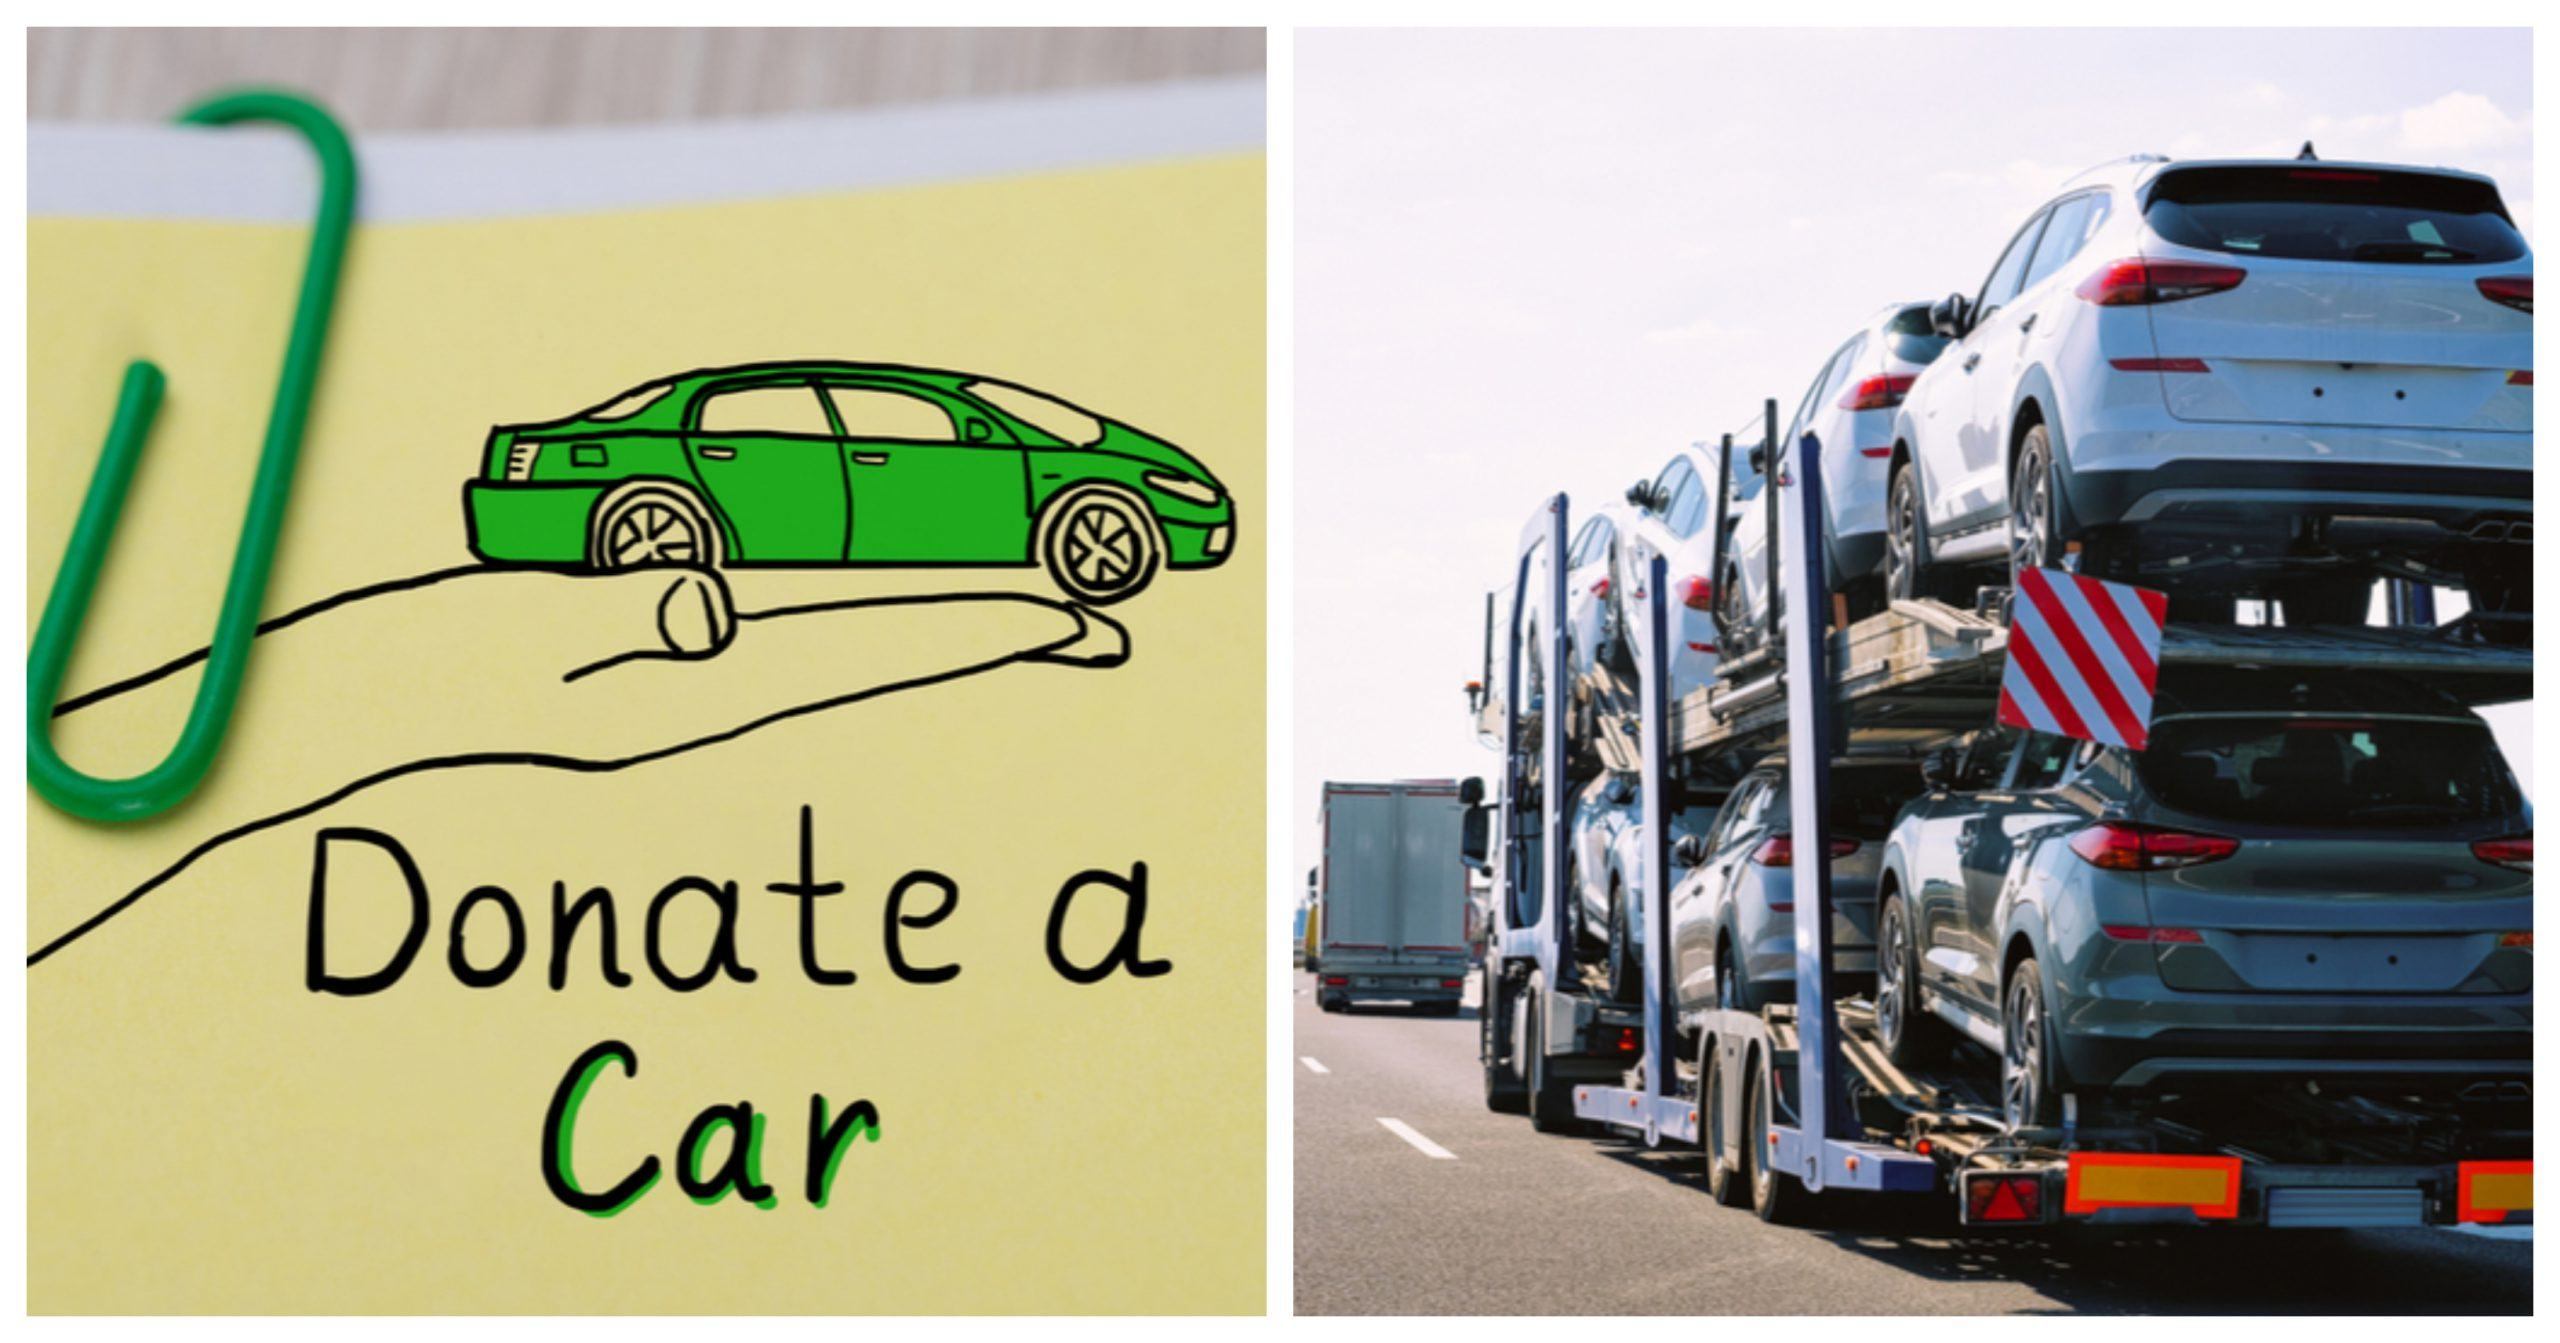 donate a car seven cars towed in car carrier